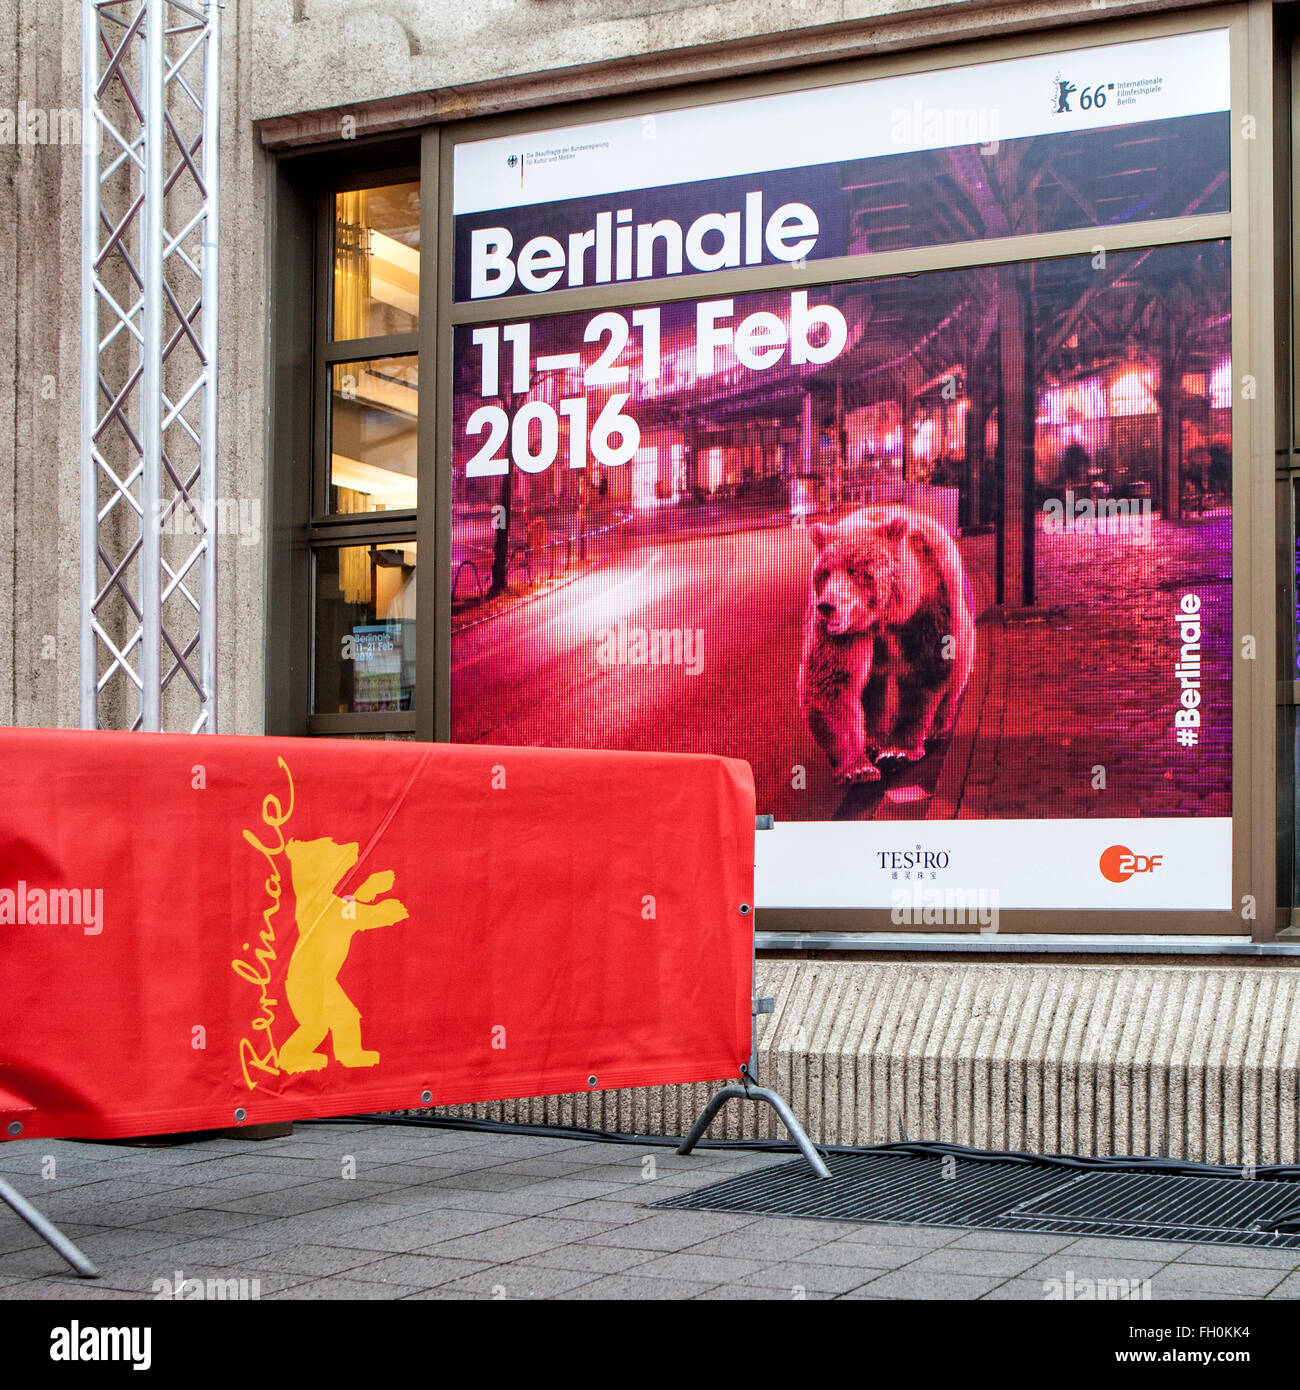 2016 Berlinale Berlin Film Festival Poster And Bear Logo At The Historic Friedrichstadt Palast